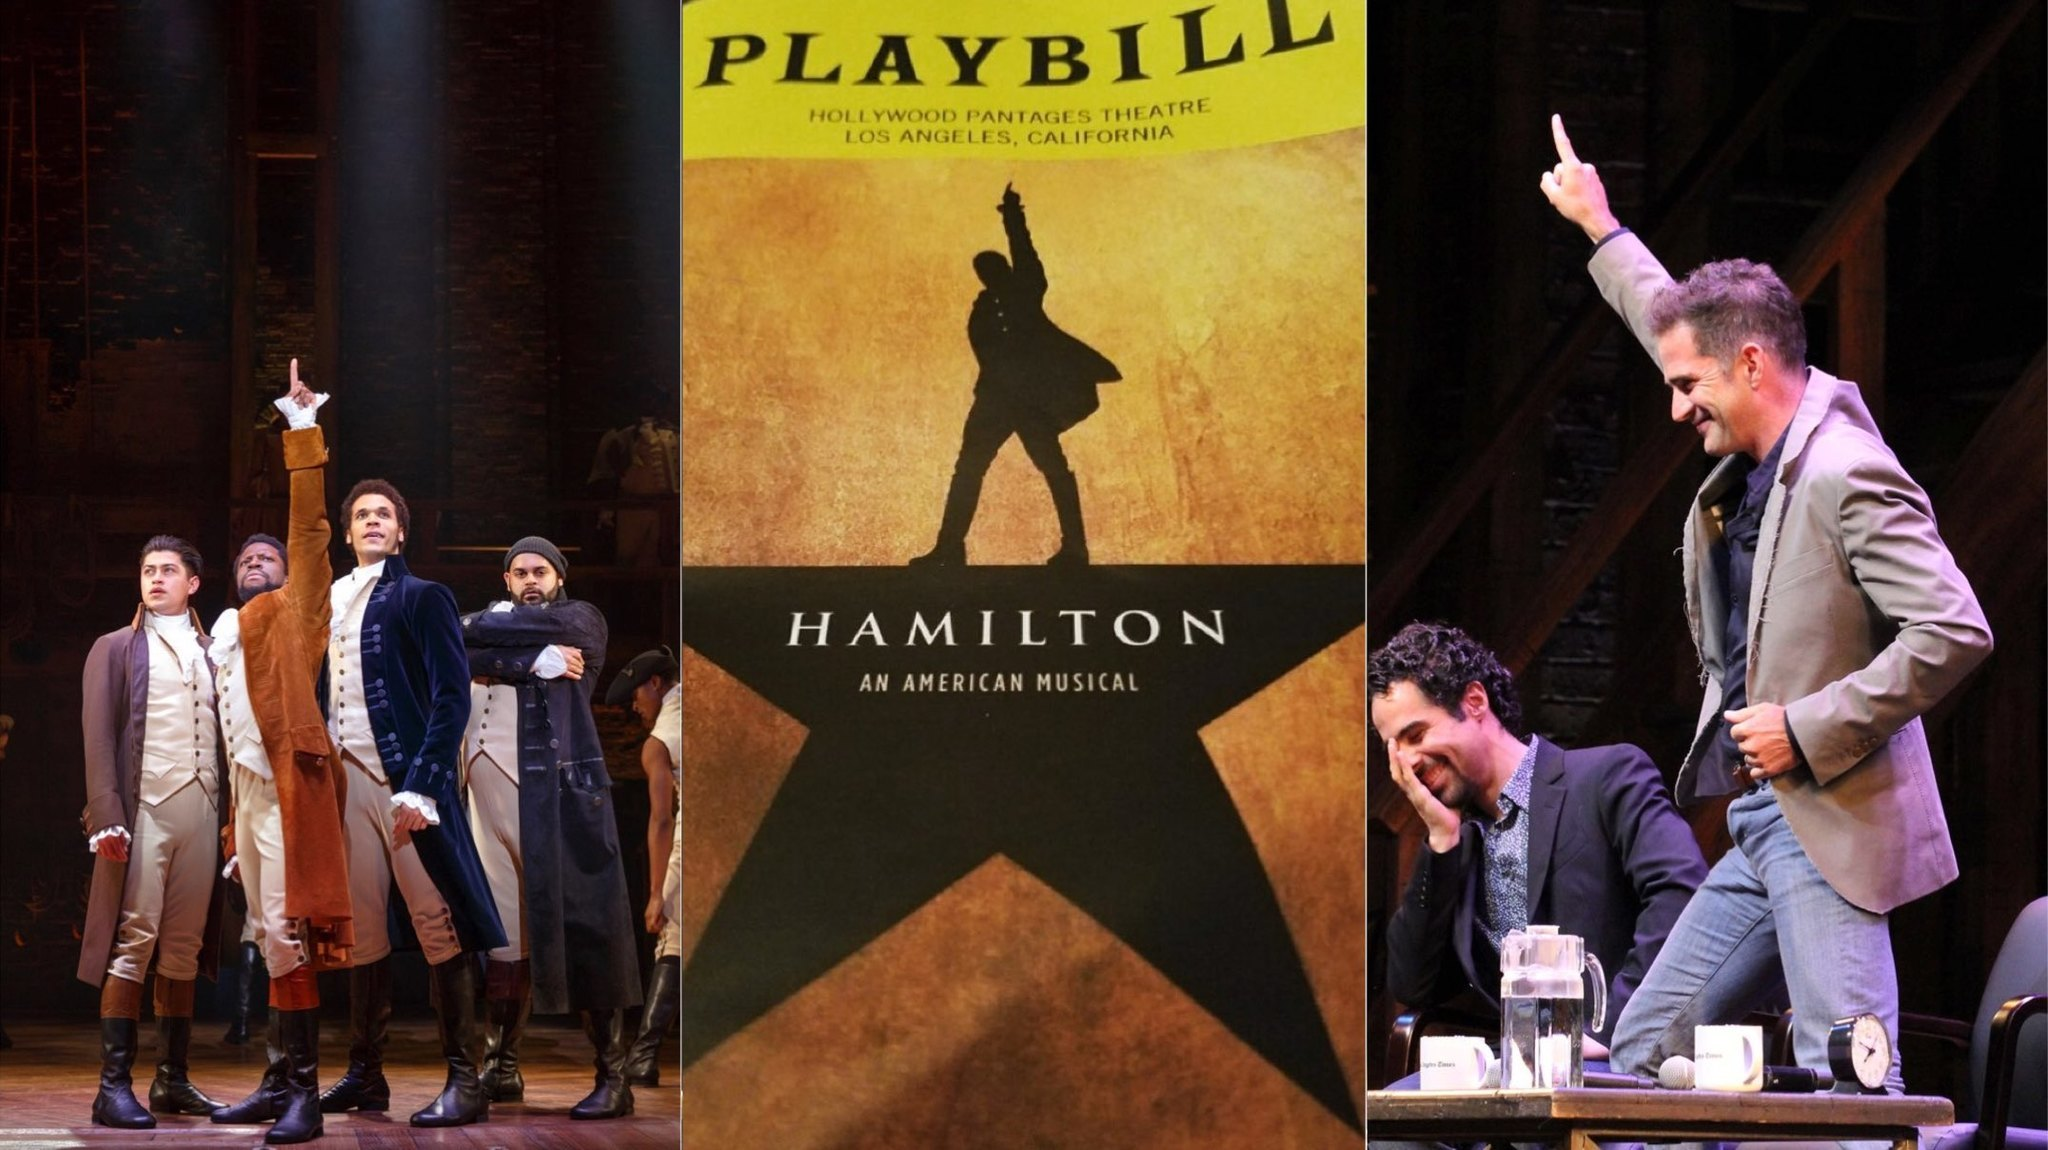 """The """"Hamilton"""" National Tour at the Orpheum Theatre in San Francisco; the """"Hamilton"""" playbill, center; and music supervisor Alex Lacamoire, left, and choreographer Andy Blankenbuehler. (Los Angeles Times)"""